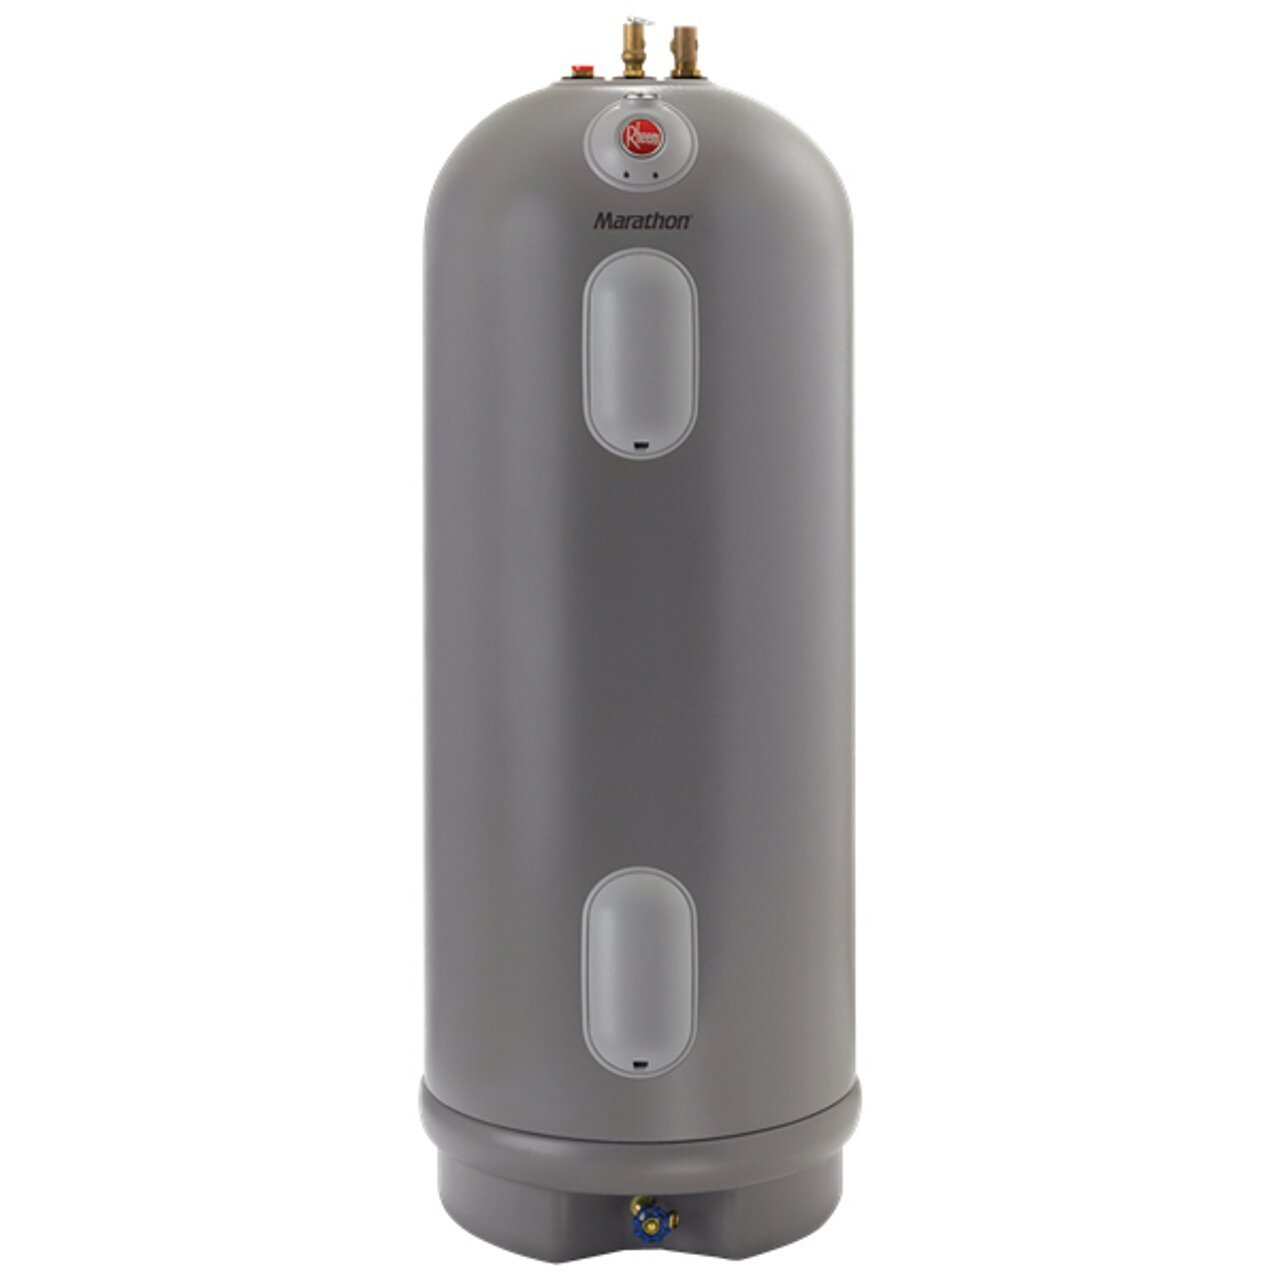 Rheem Mr50245 Marathon Tall Electric Water Heater 50